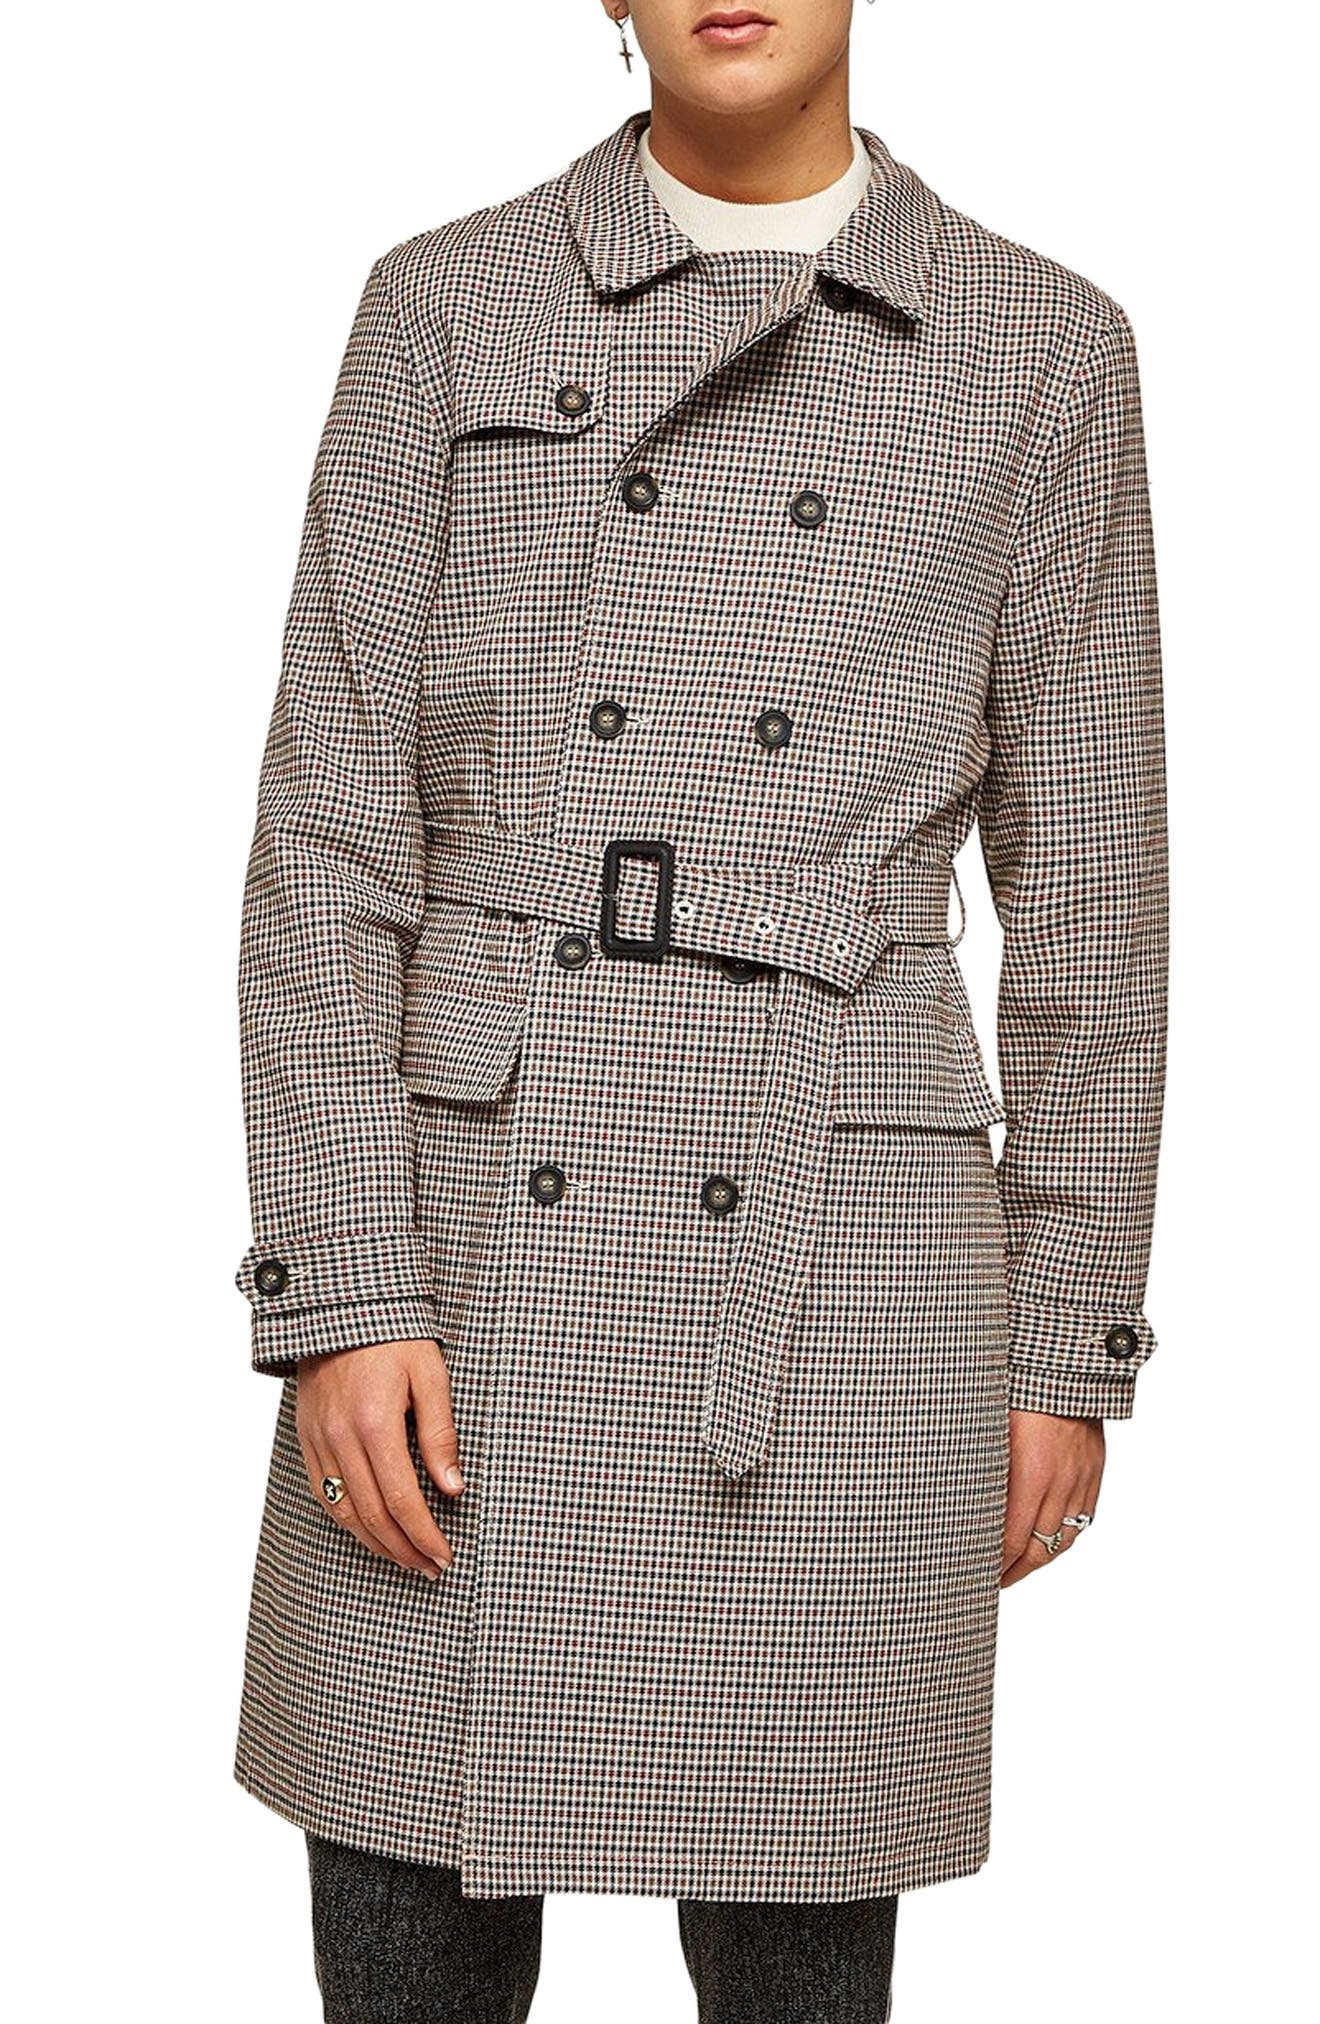 Men's Vintage Style Coats and Jackets Mens Topman Houndstooth Trench Coat Size XX-Large - Brown $140.00 AT vintagedancer.com